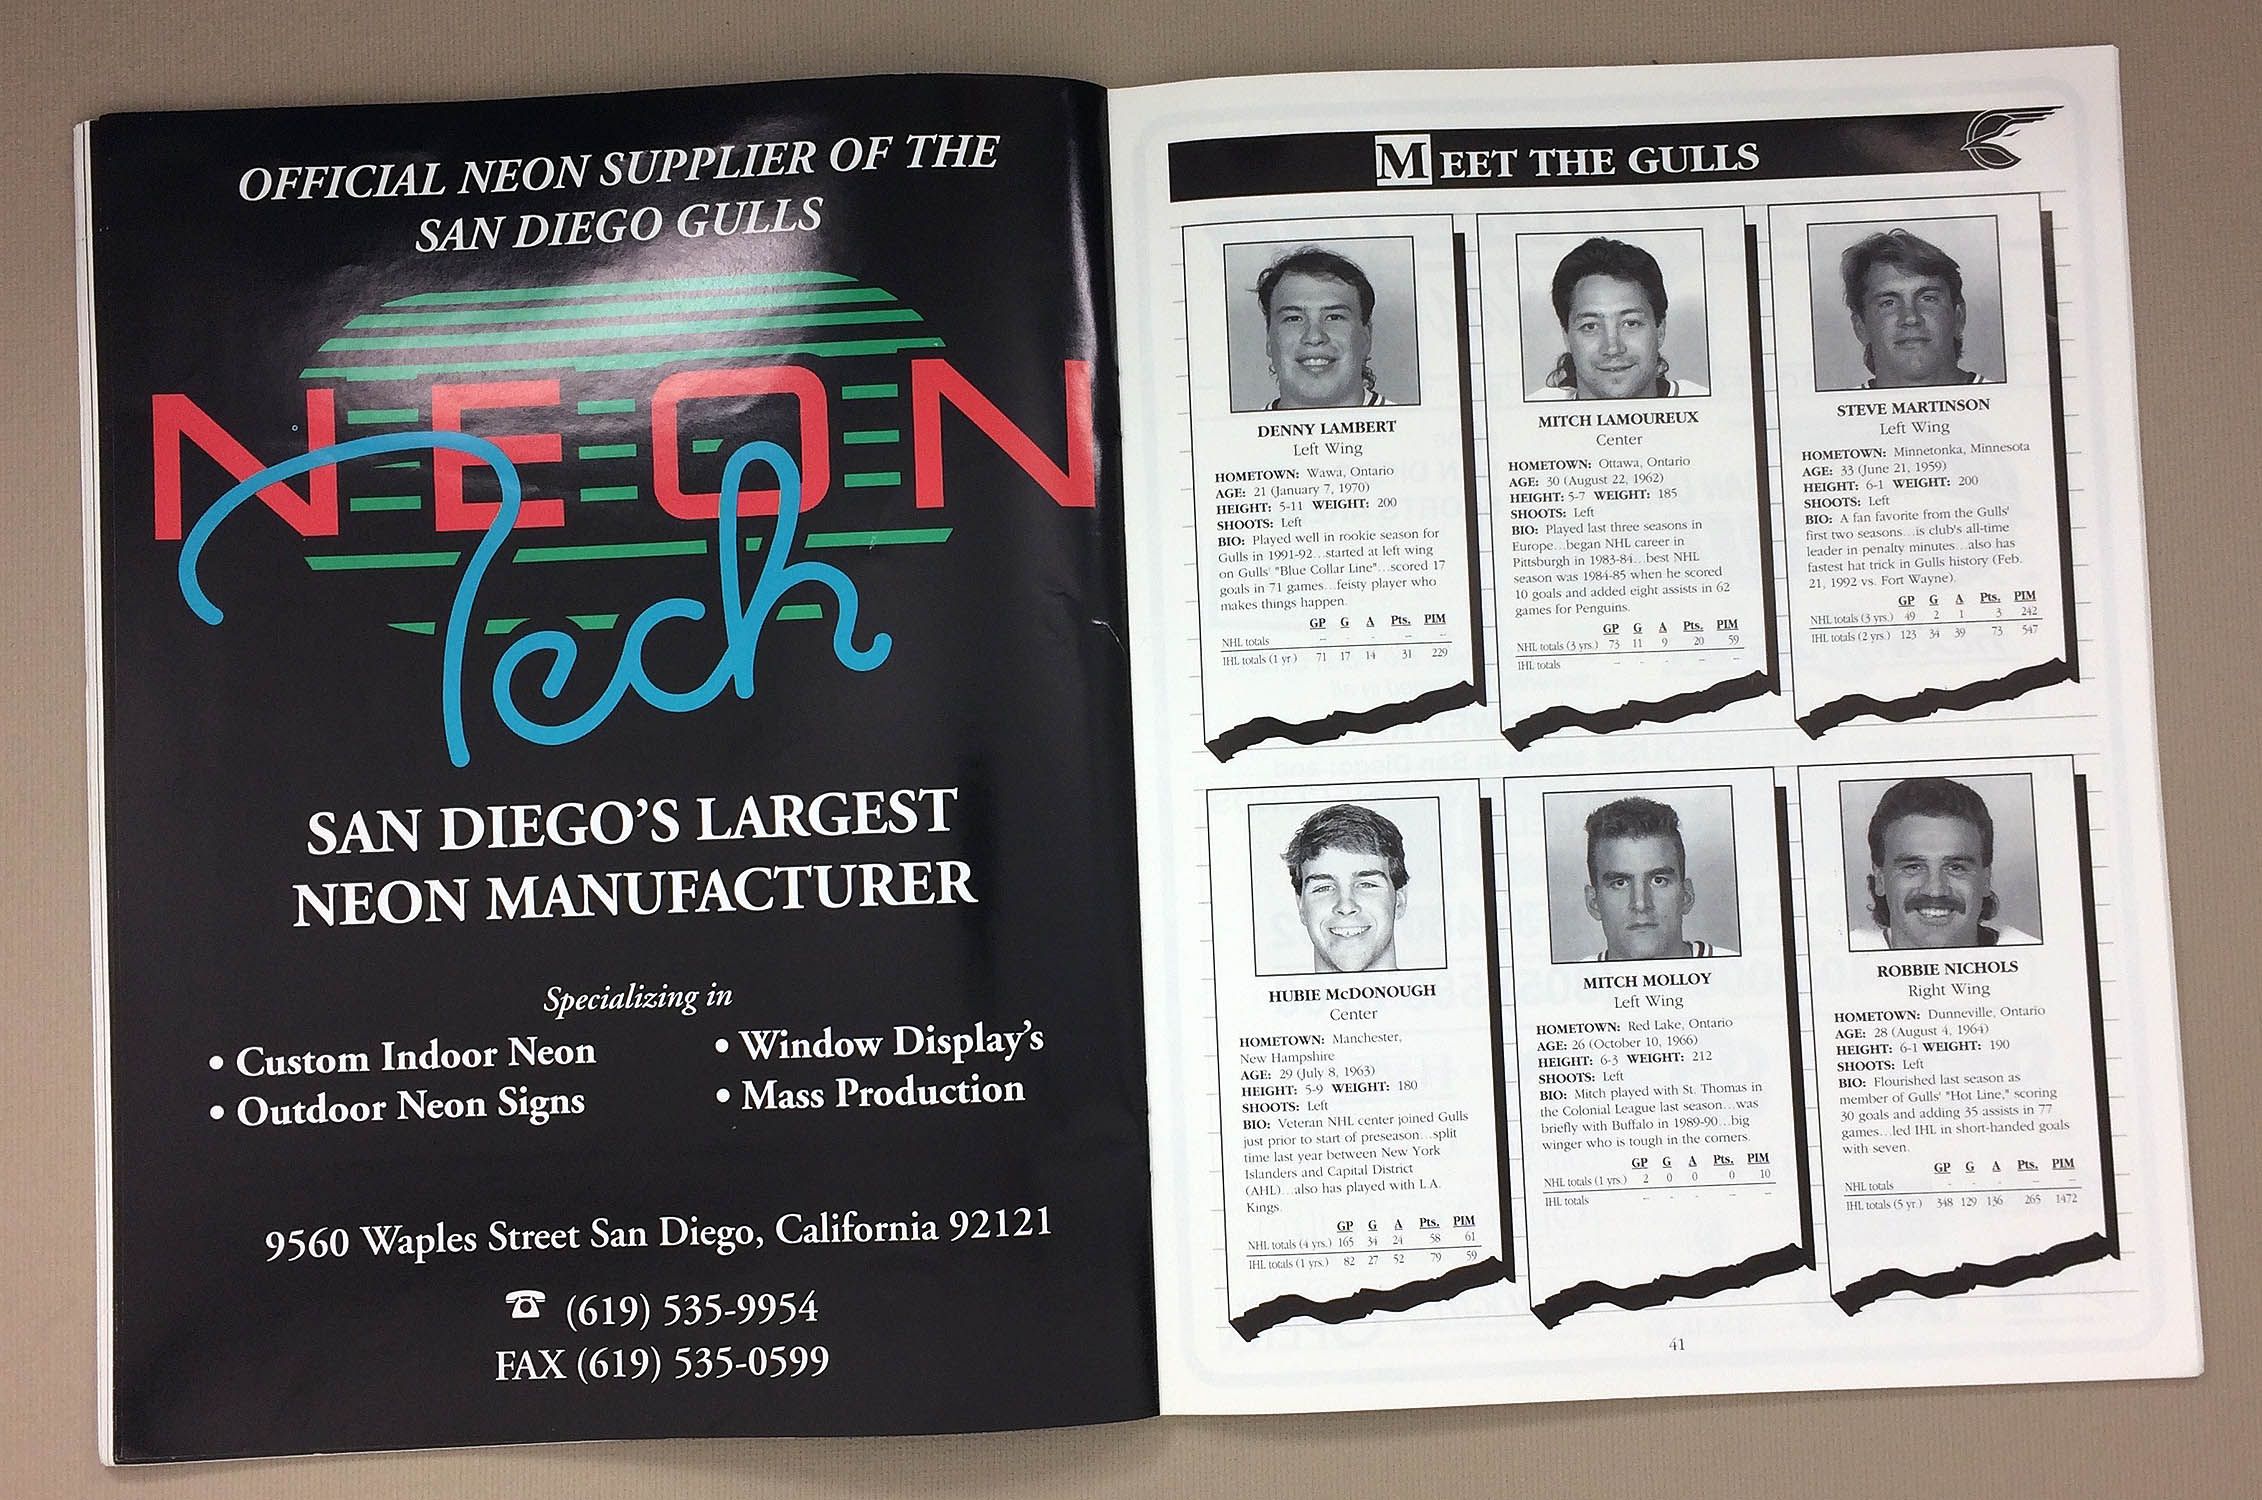 San Diego Gulls 1992 93 Program